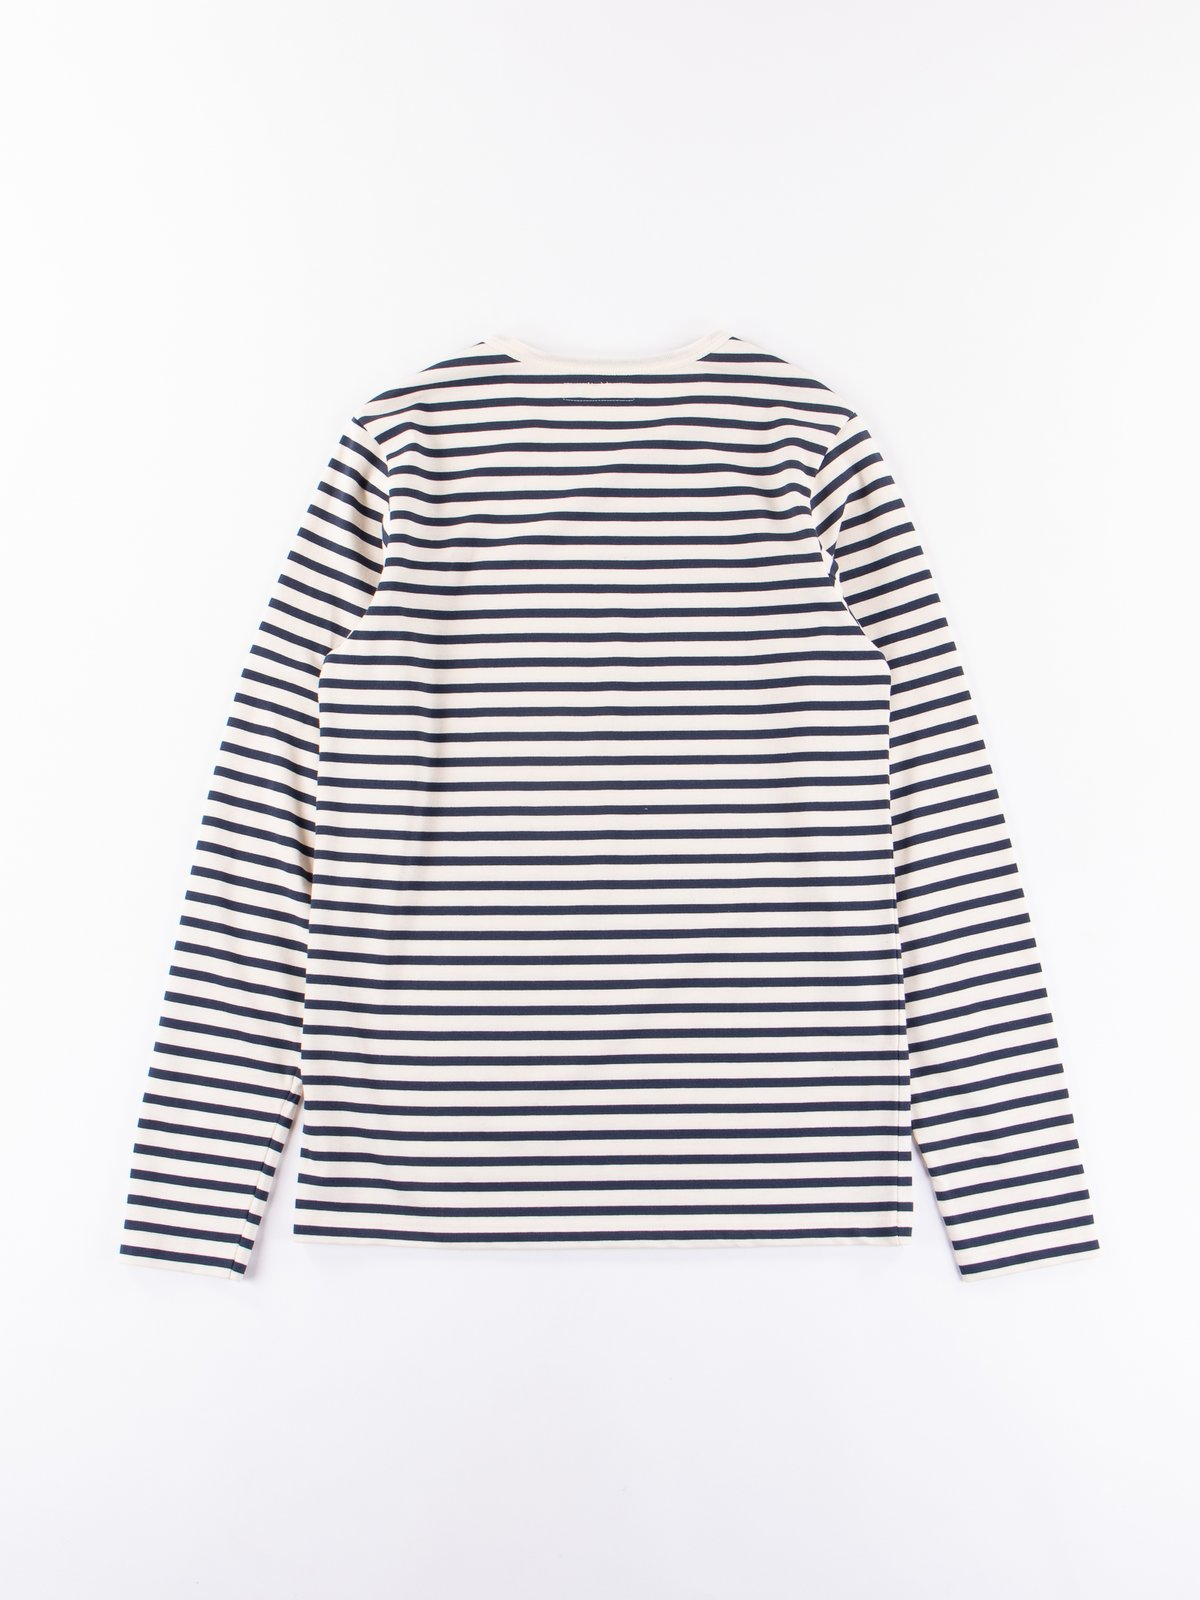 Ink/Natural Stripe 2M12 Crew Neck Long Sleeve Tee - Image 5